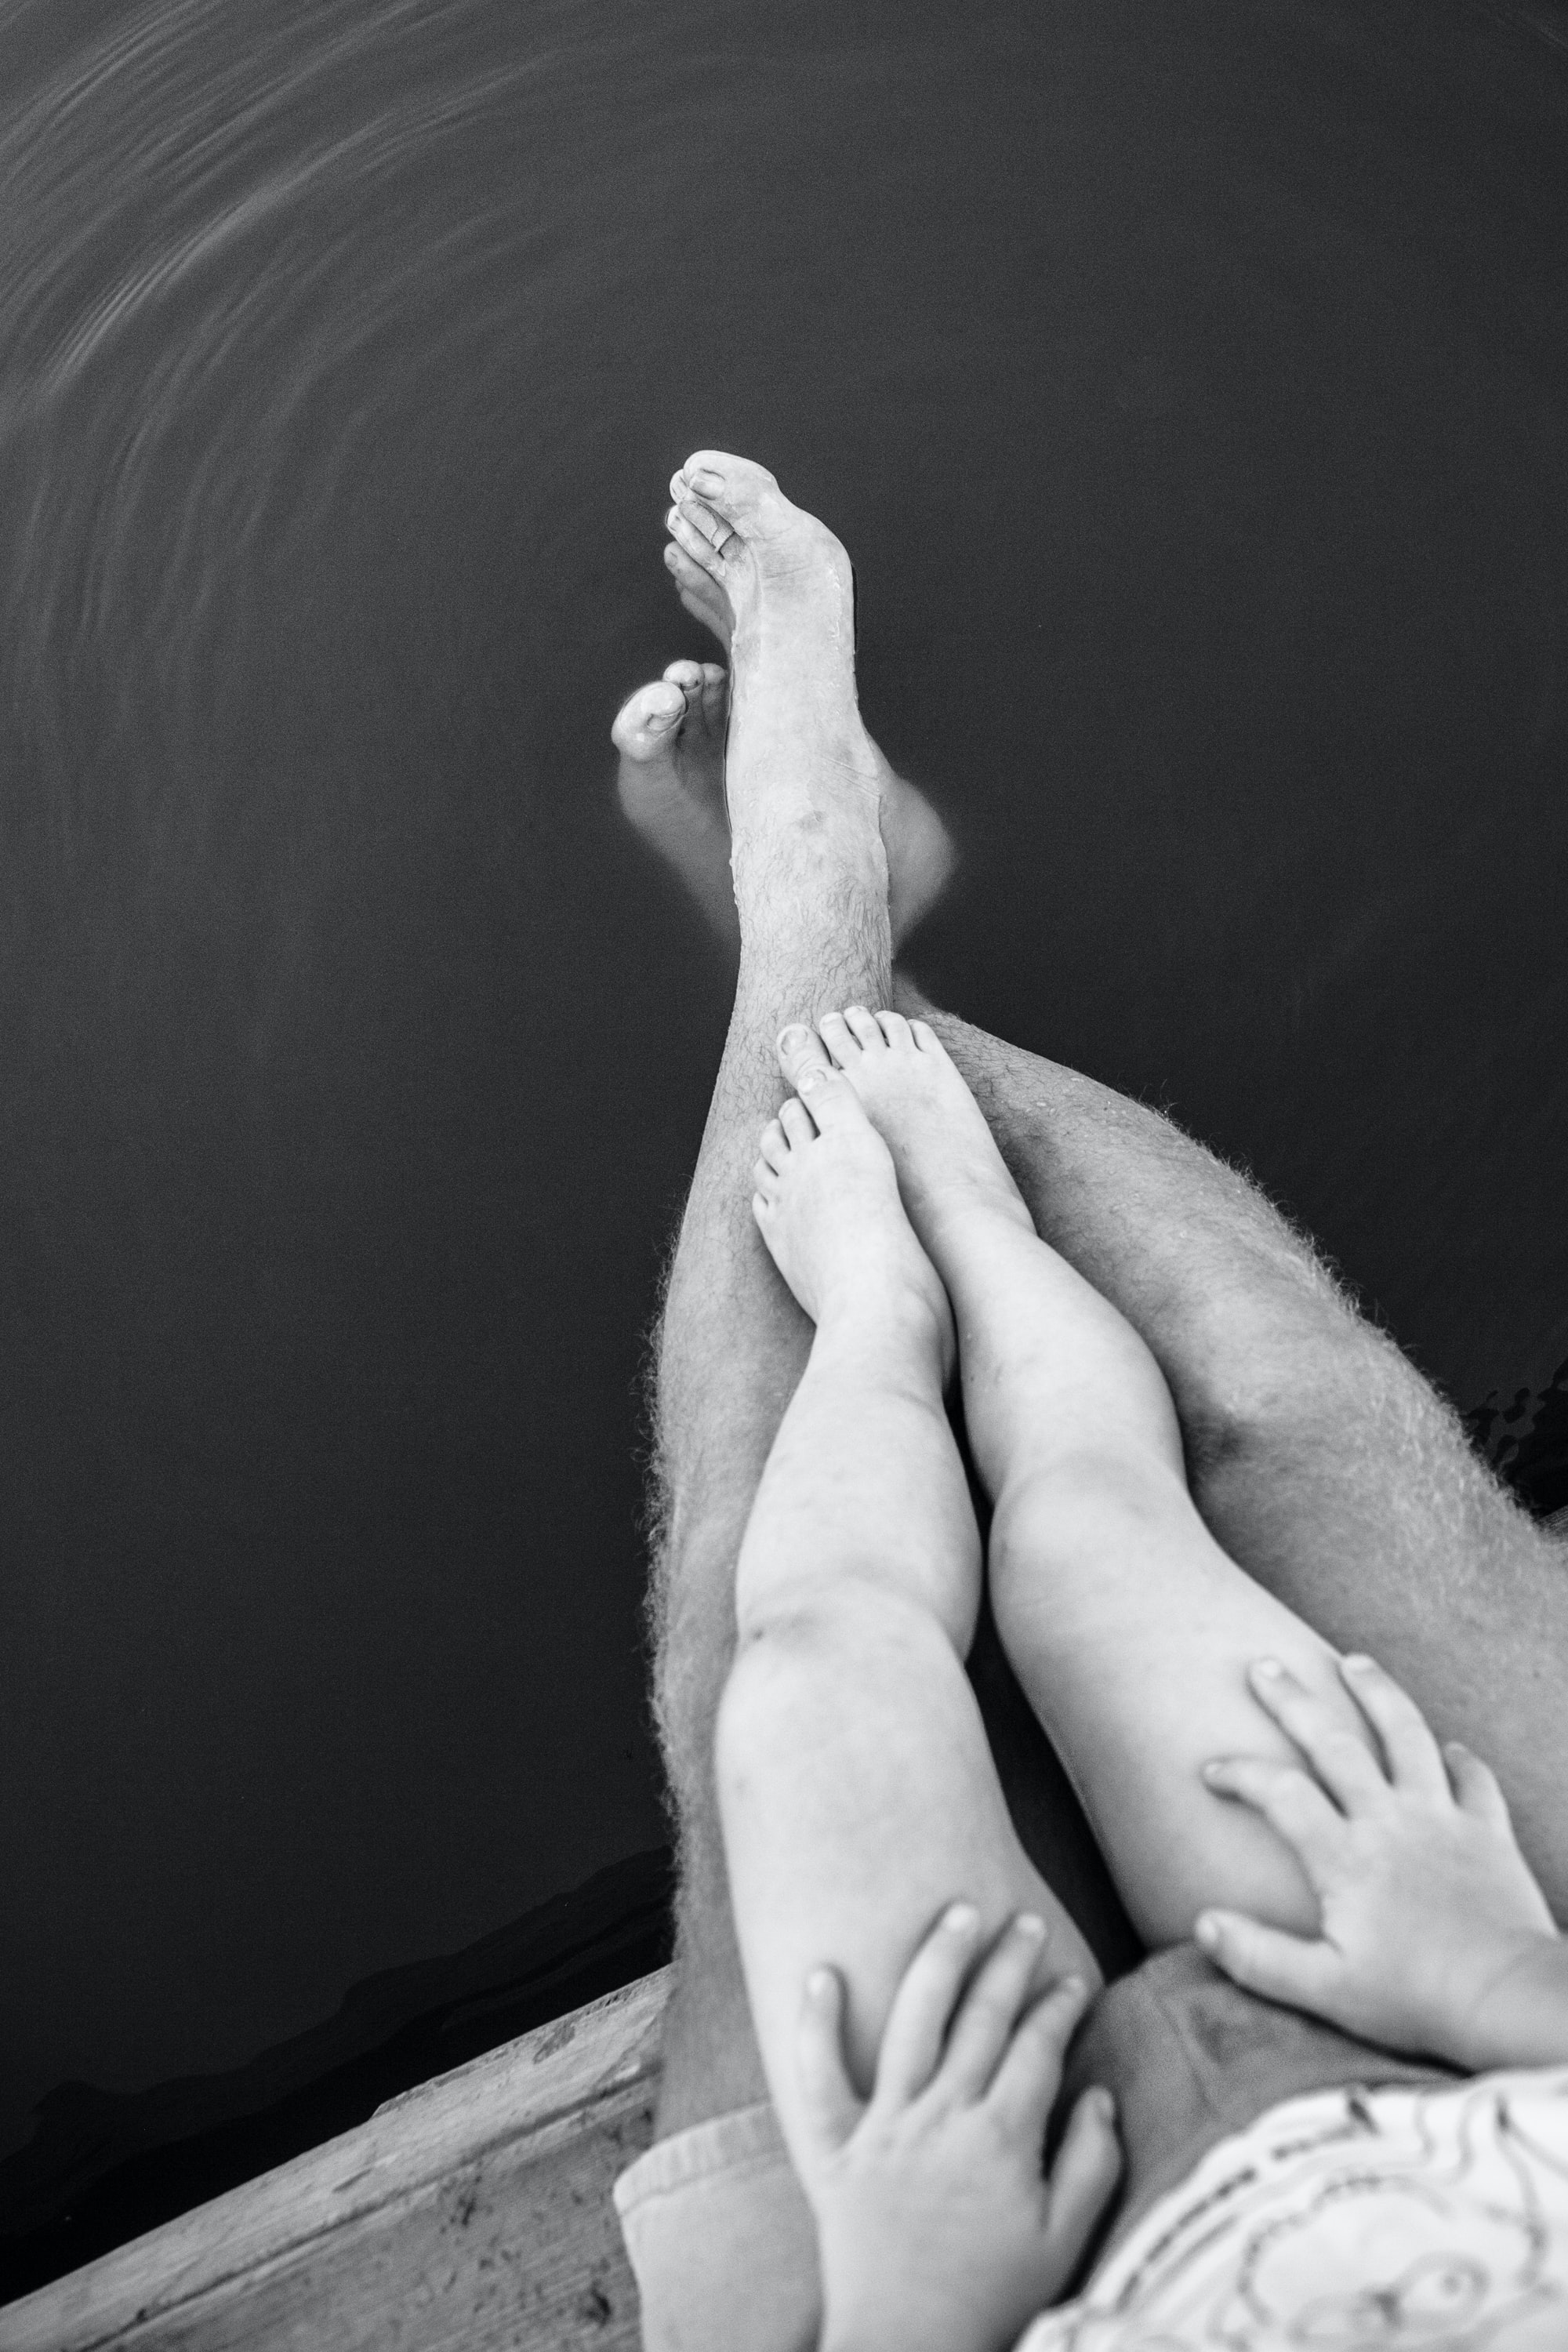 grayscale photo of person's feet on body of water